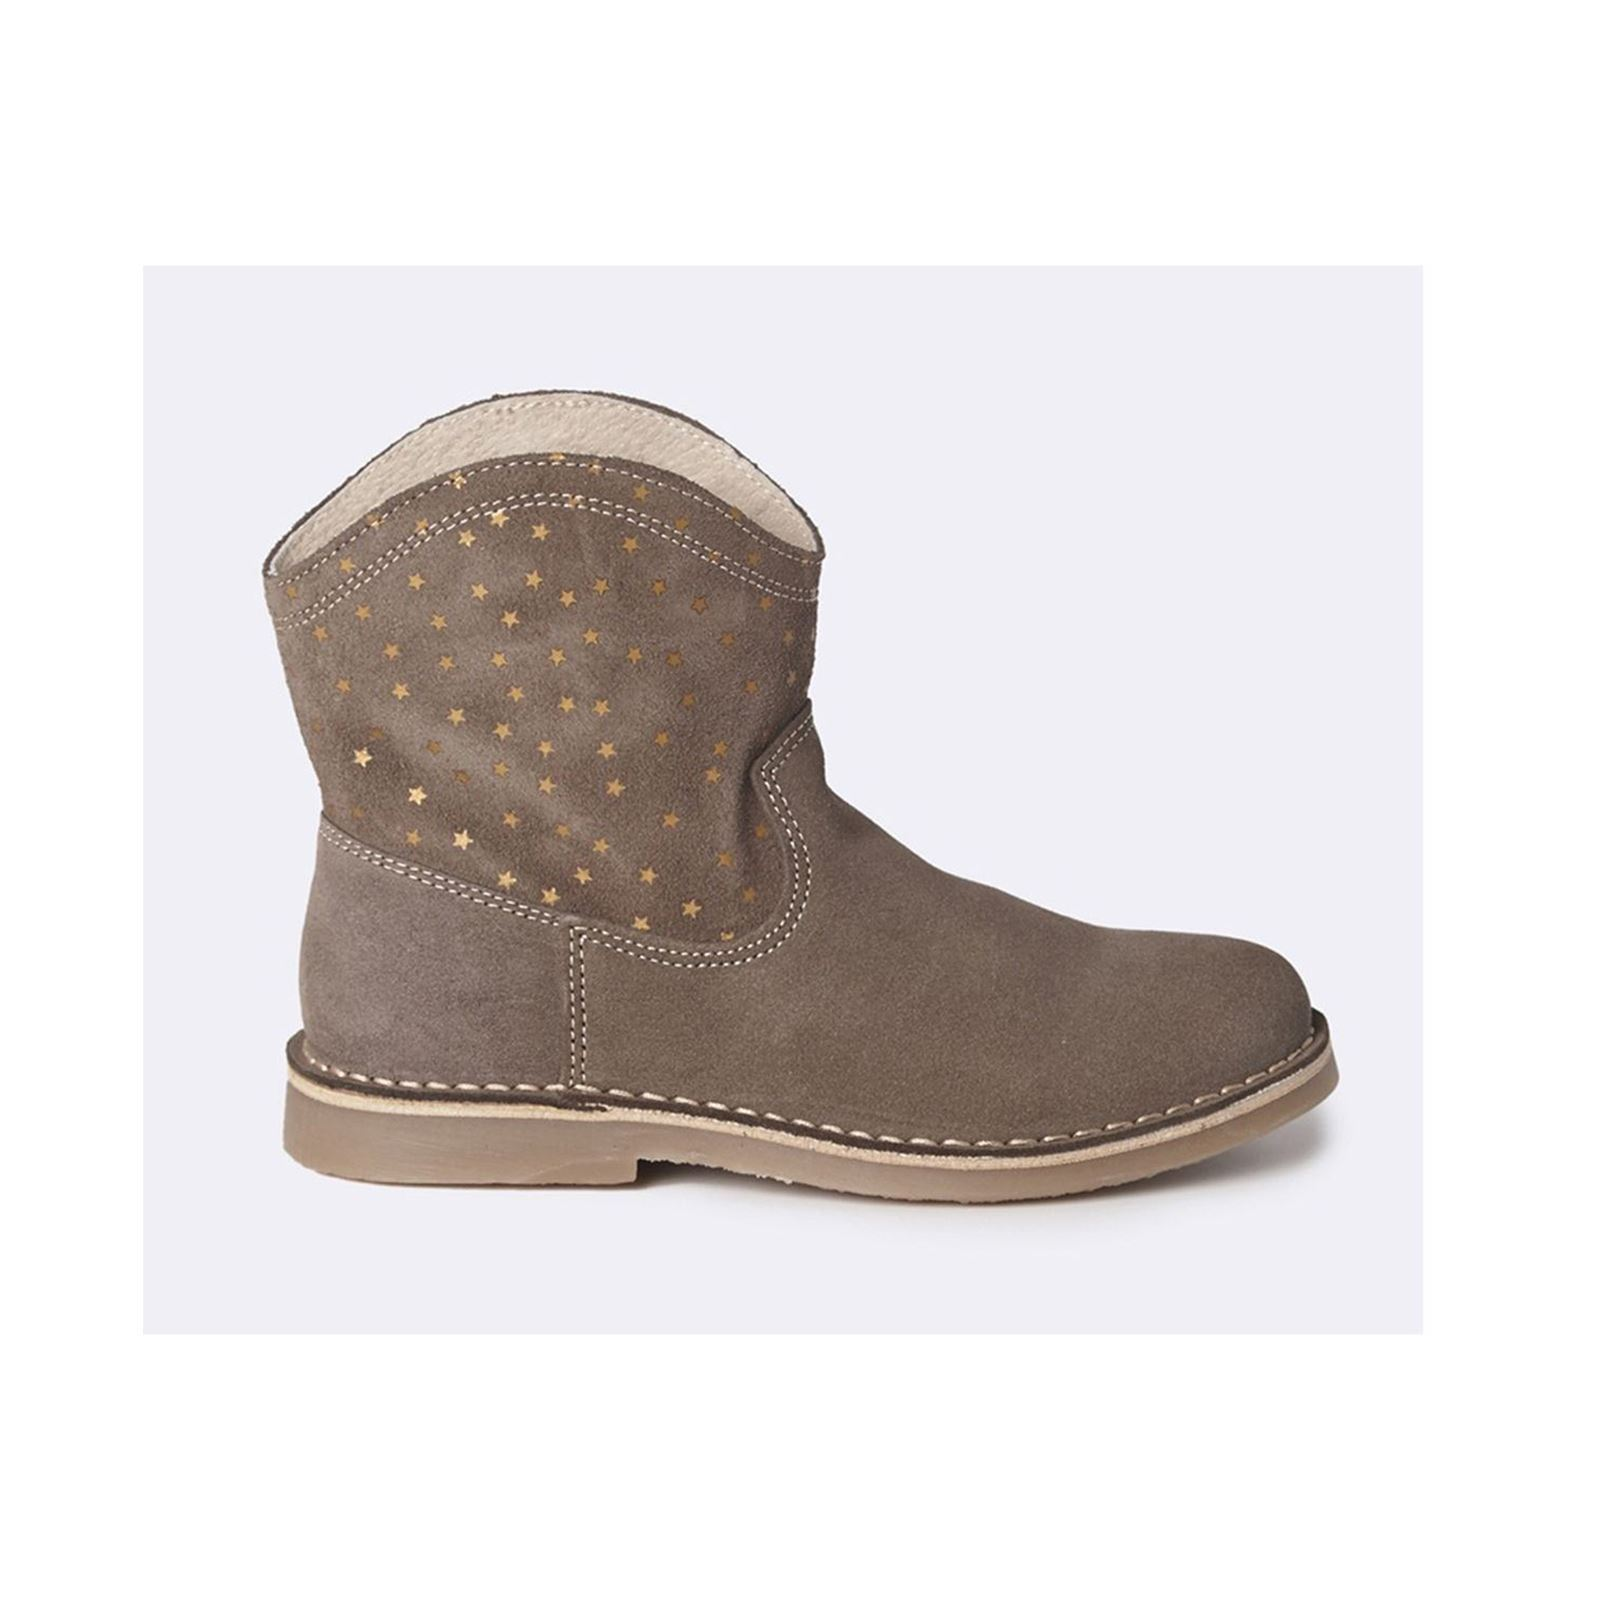 Cyrillus Boots en cuir - taupe